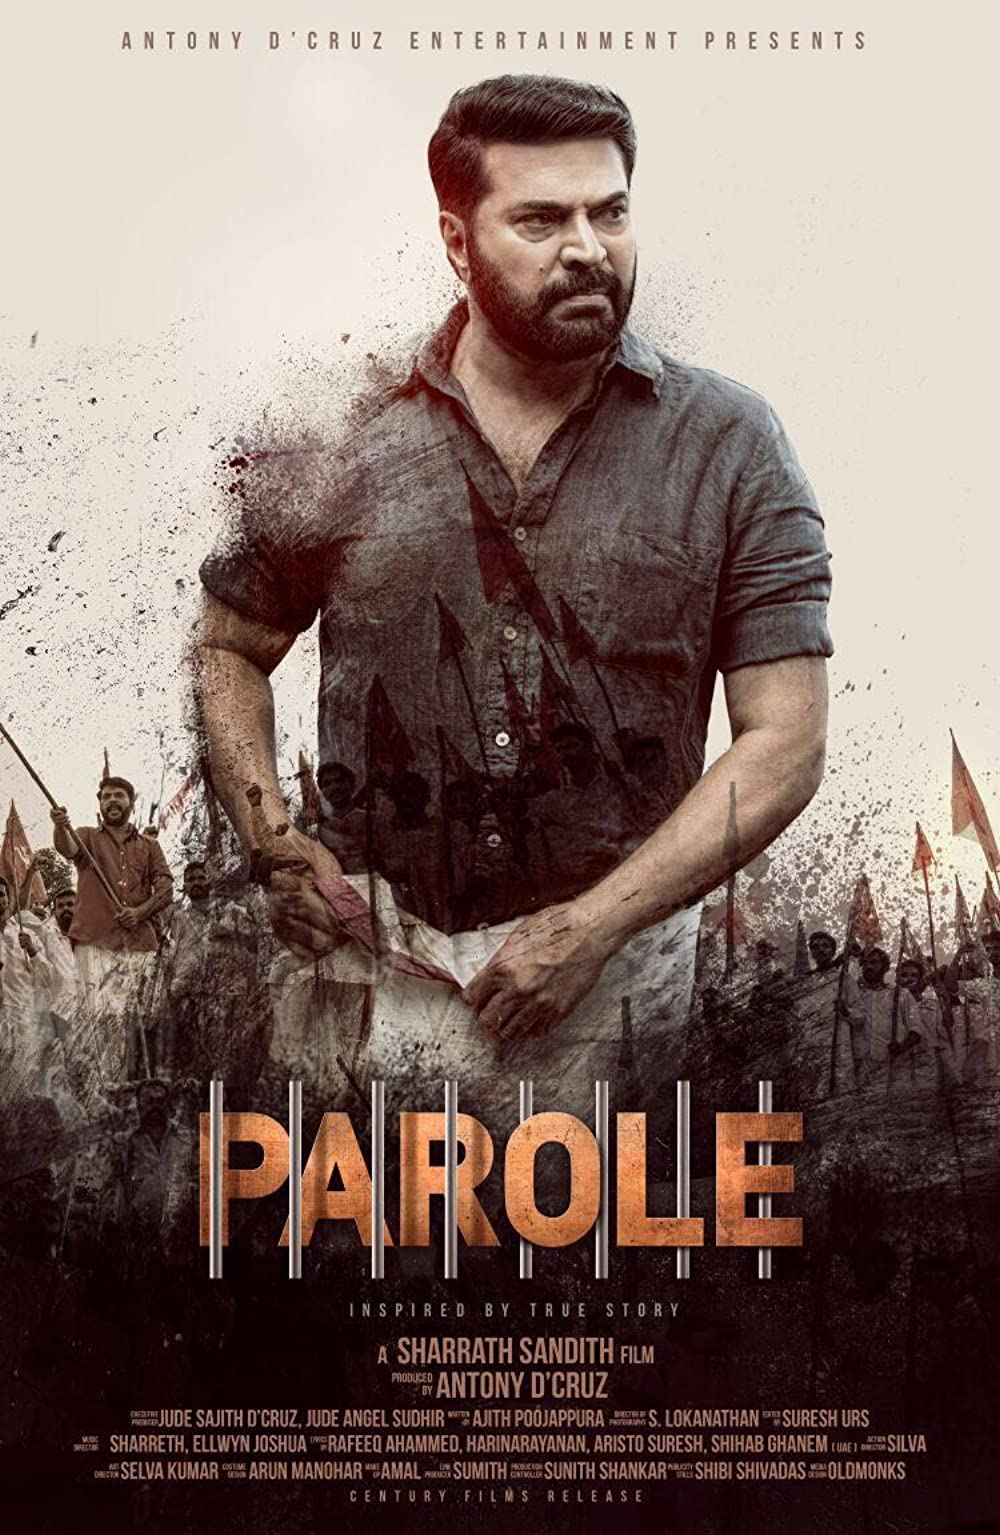 Parol (Parole) 2021 Hindi Dubbed 720p HDRip 900MB x264 AAC